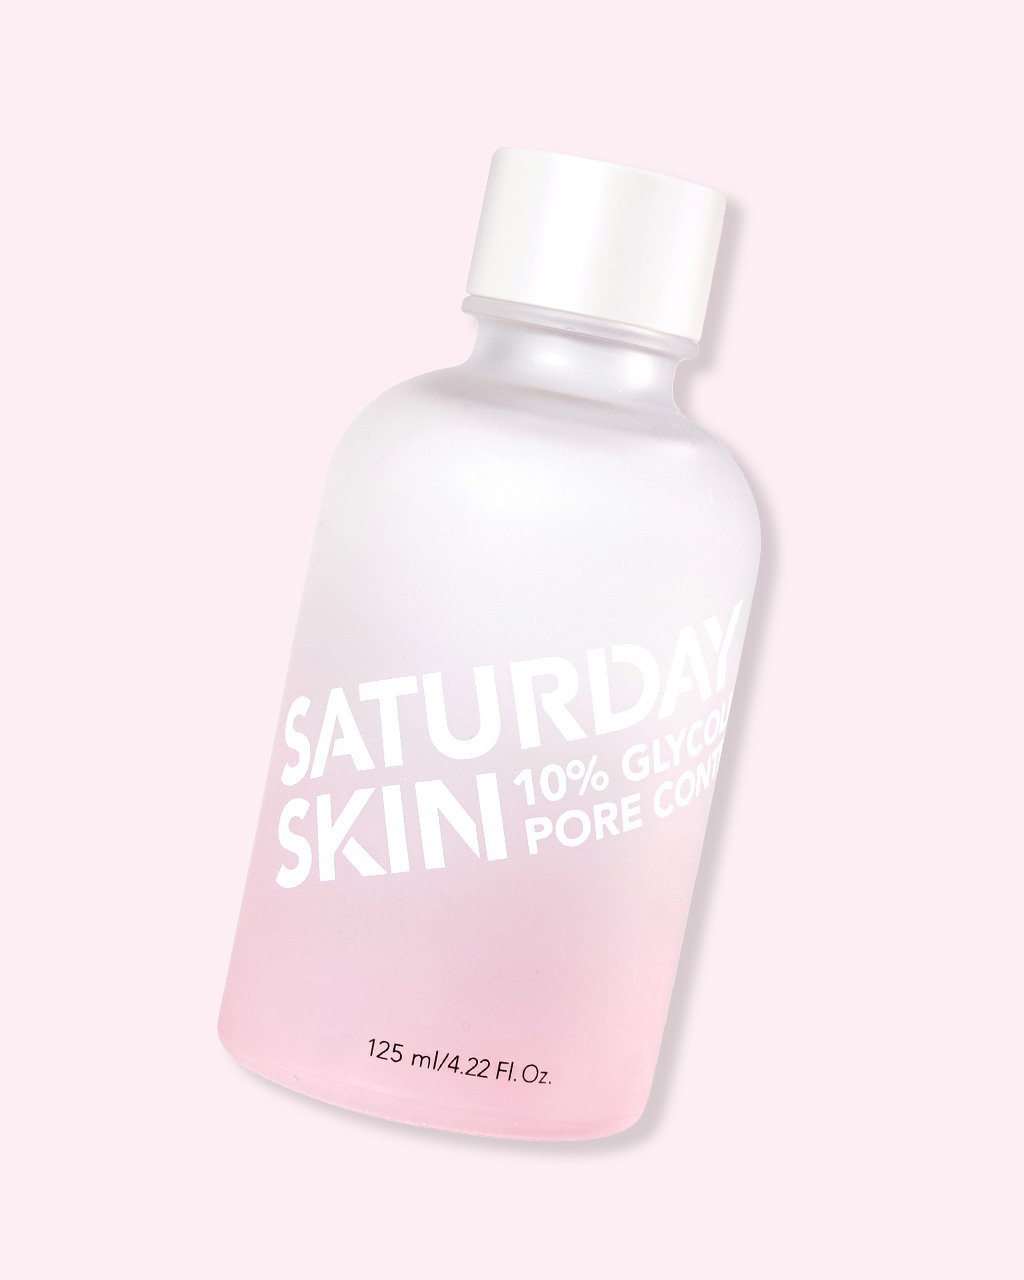 Saturday Skin Pore Clarifying Toner 10% Glycolic Acid